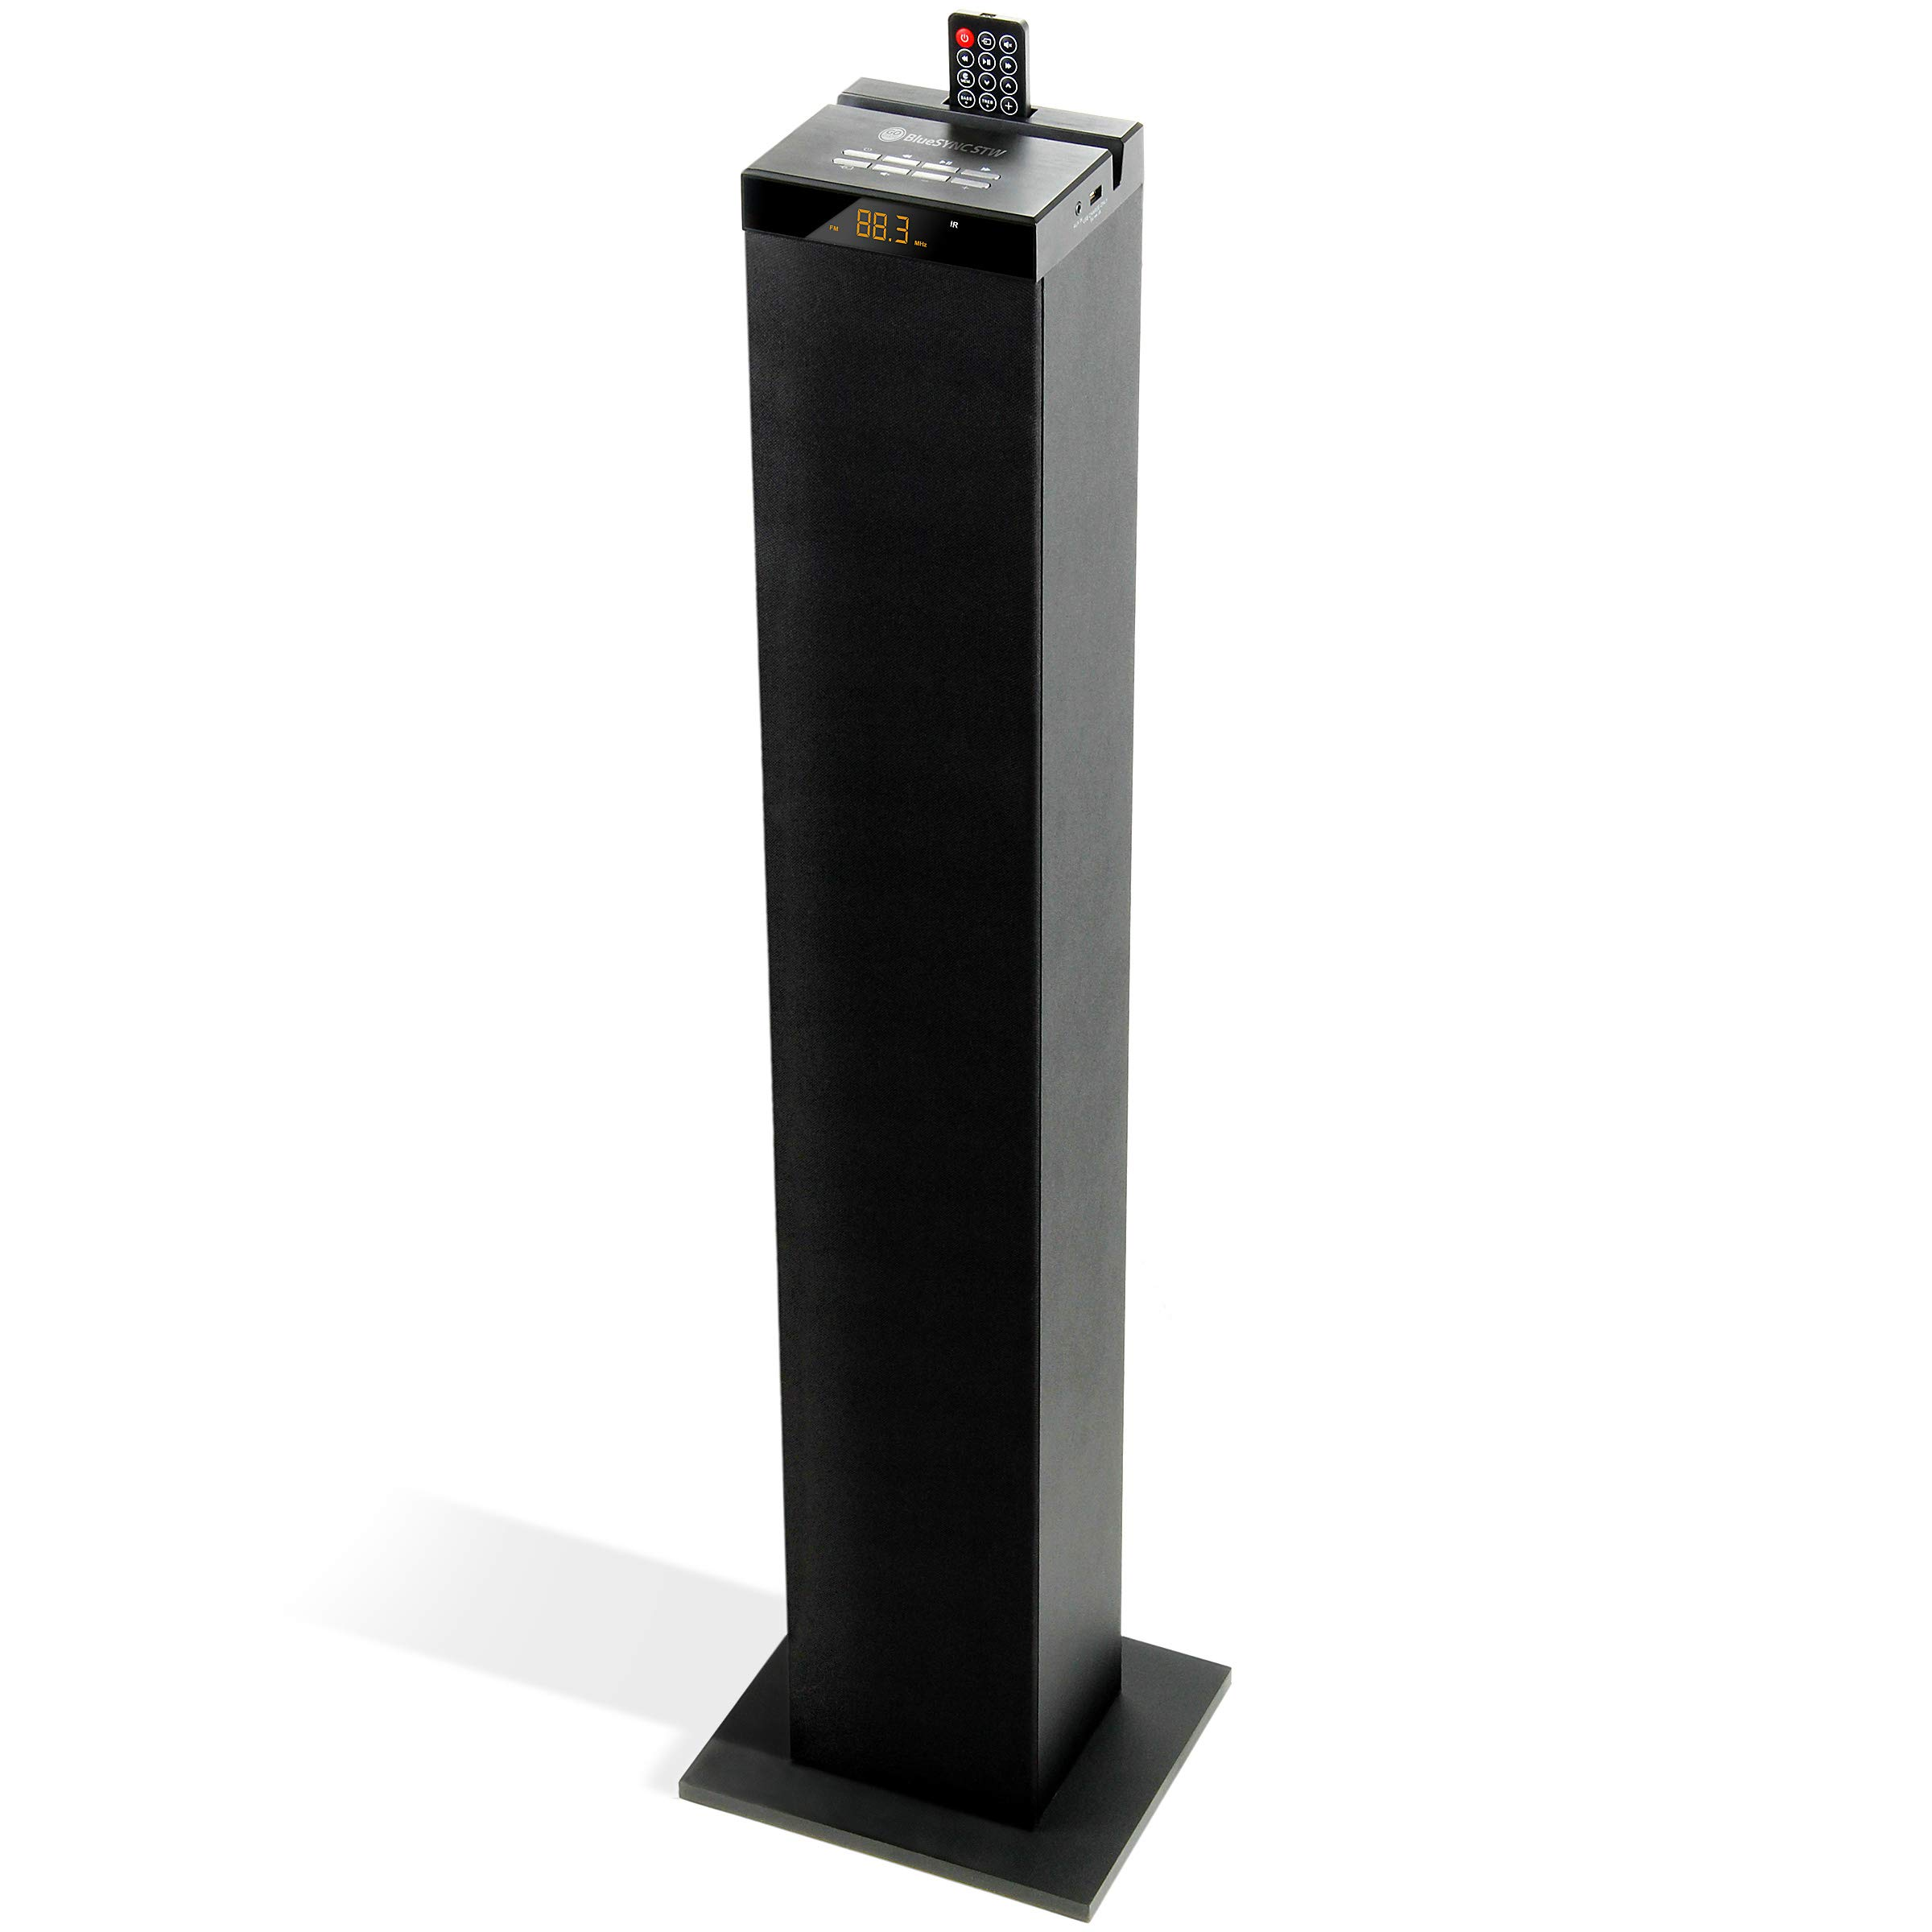 GOgroove Bluetooth Tower Speaker with Integrated Subwoofer [2.1 Audio] BlueSYNC STW Floorstanding Speaker Tower with 120W Peak, 3.5mm AUX, Flash Drive MP3, FM Radio, USB Charging (Single Unit)